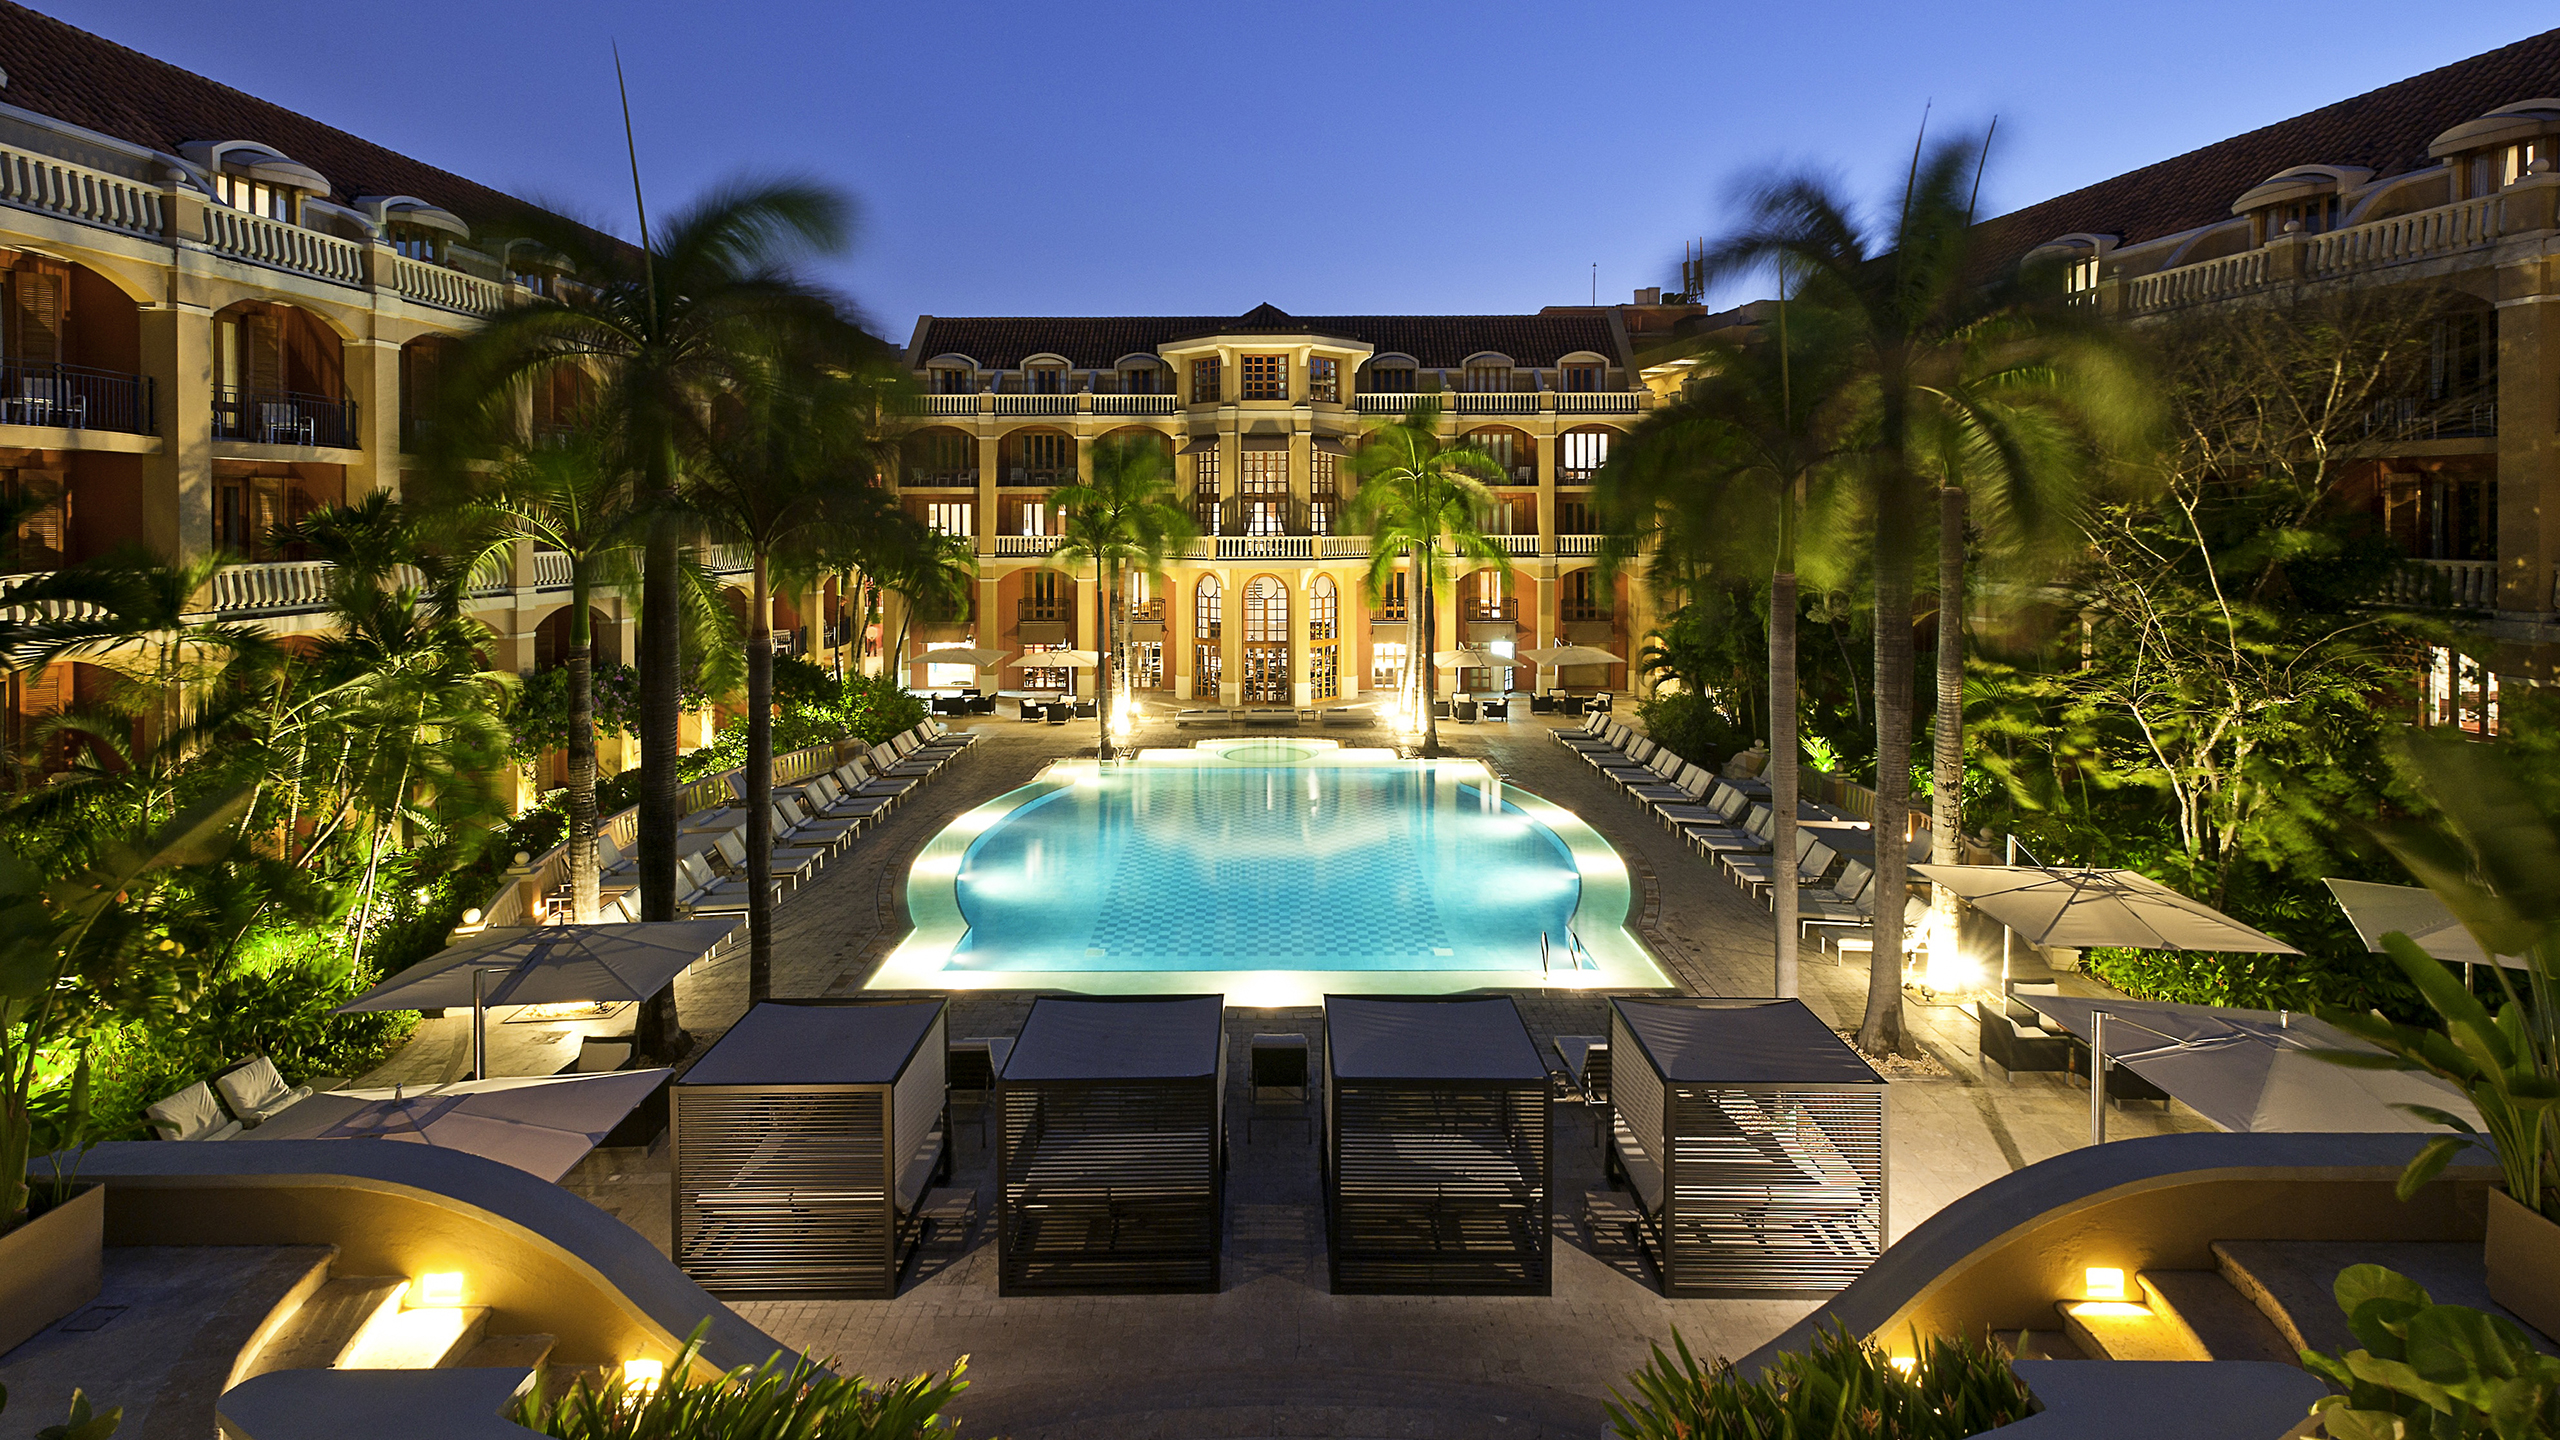 view from the Sofitel Santa Clara Cartagena of the pool and the colonial architecture of the hotel